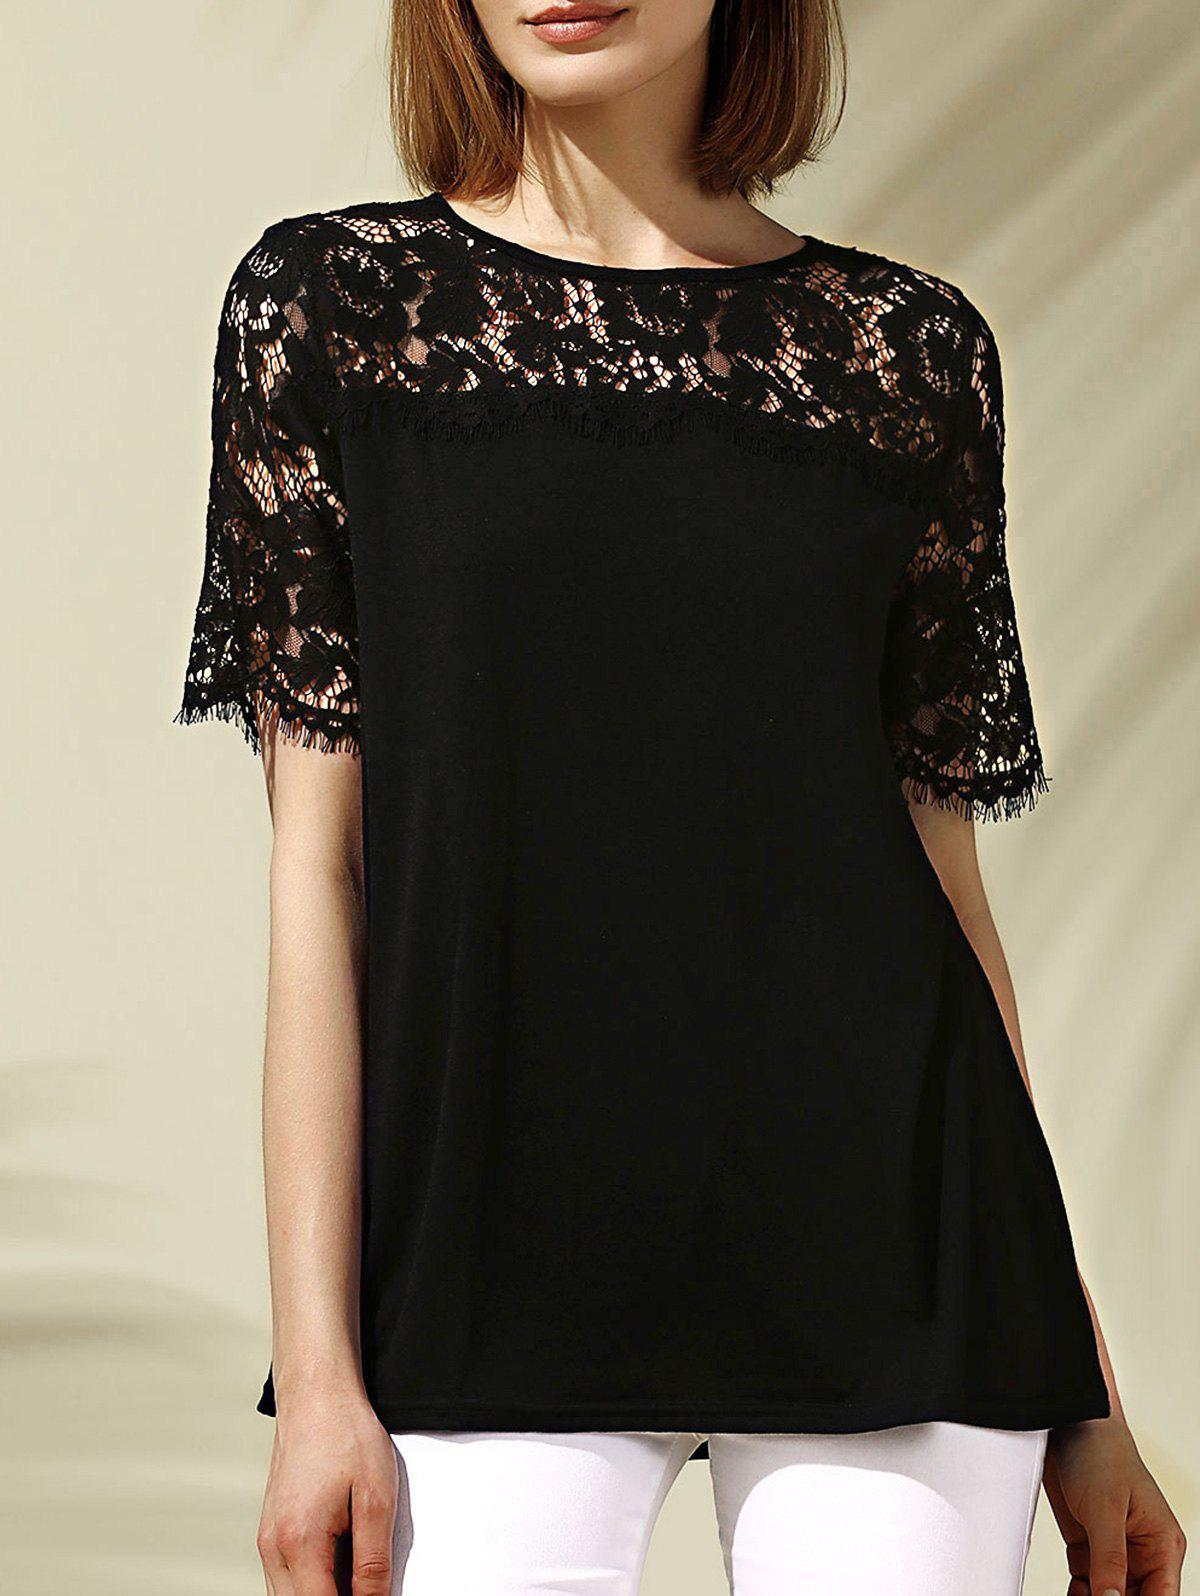 Sweet Women's Round Neck Short Sleeve Lace Spliced Hollow Out T-Shirt